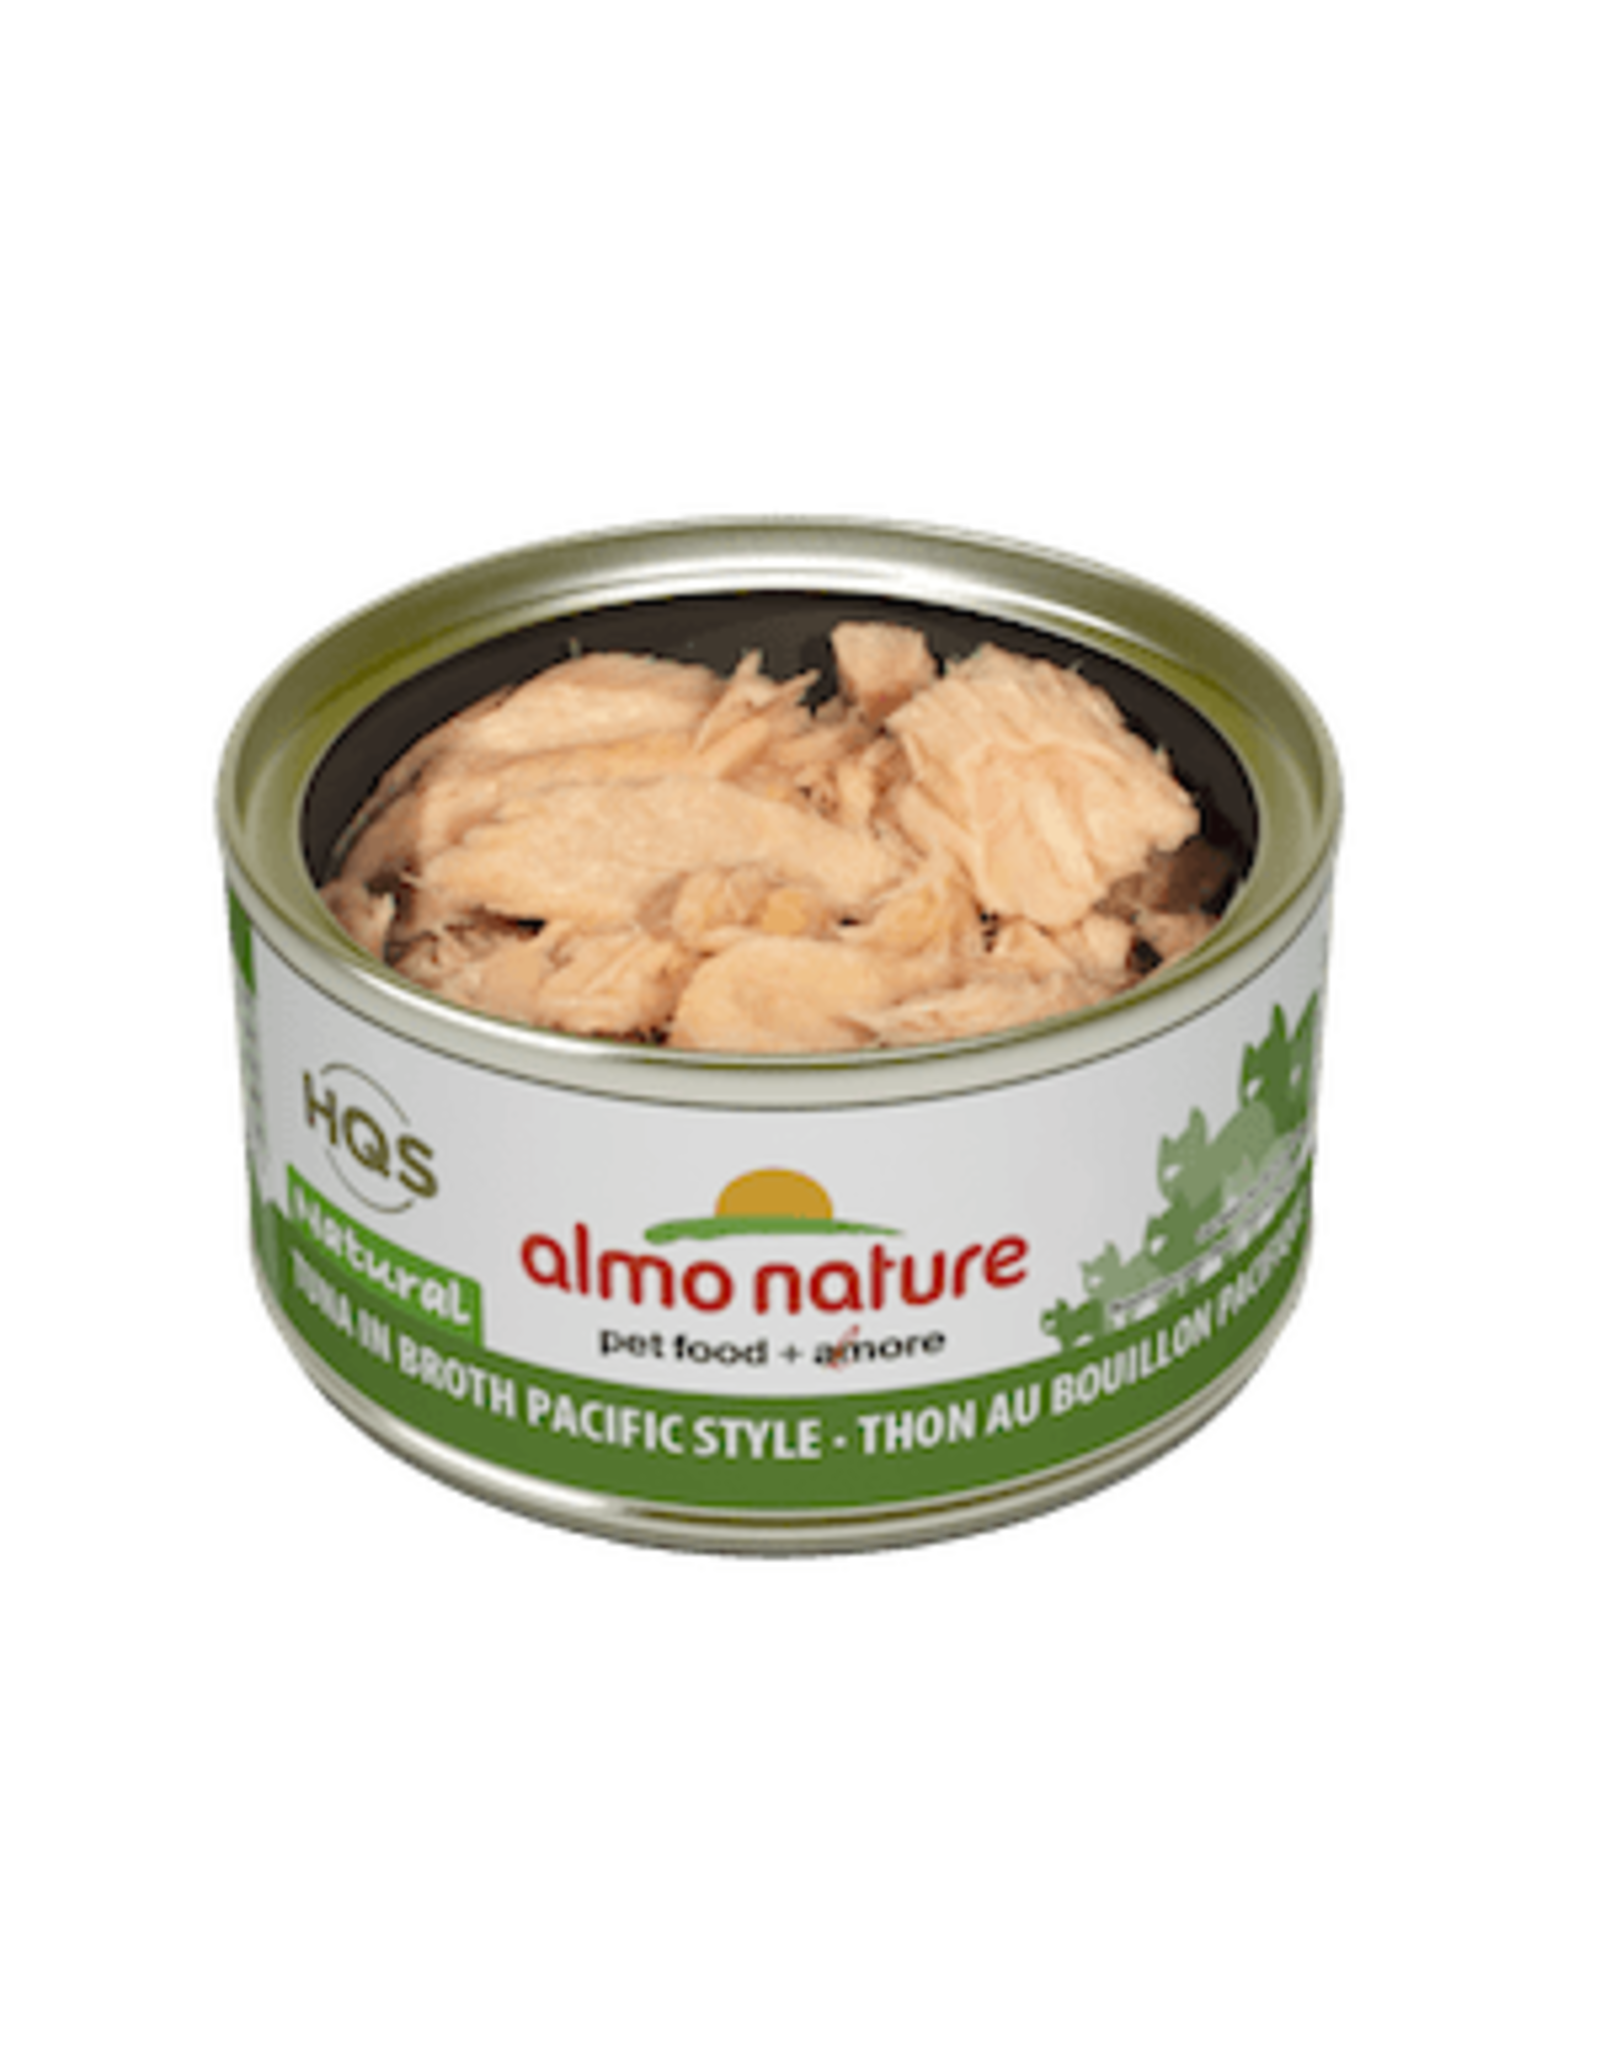 Almo Nature Almo Nature HQS Natural Tuna in Broth Pacific Style Cat Food 2.47oz